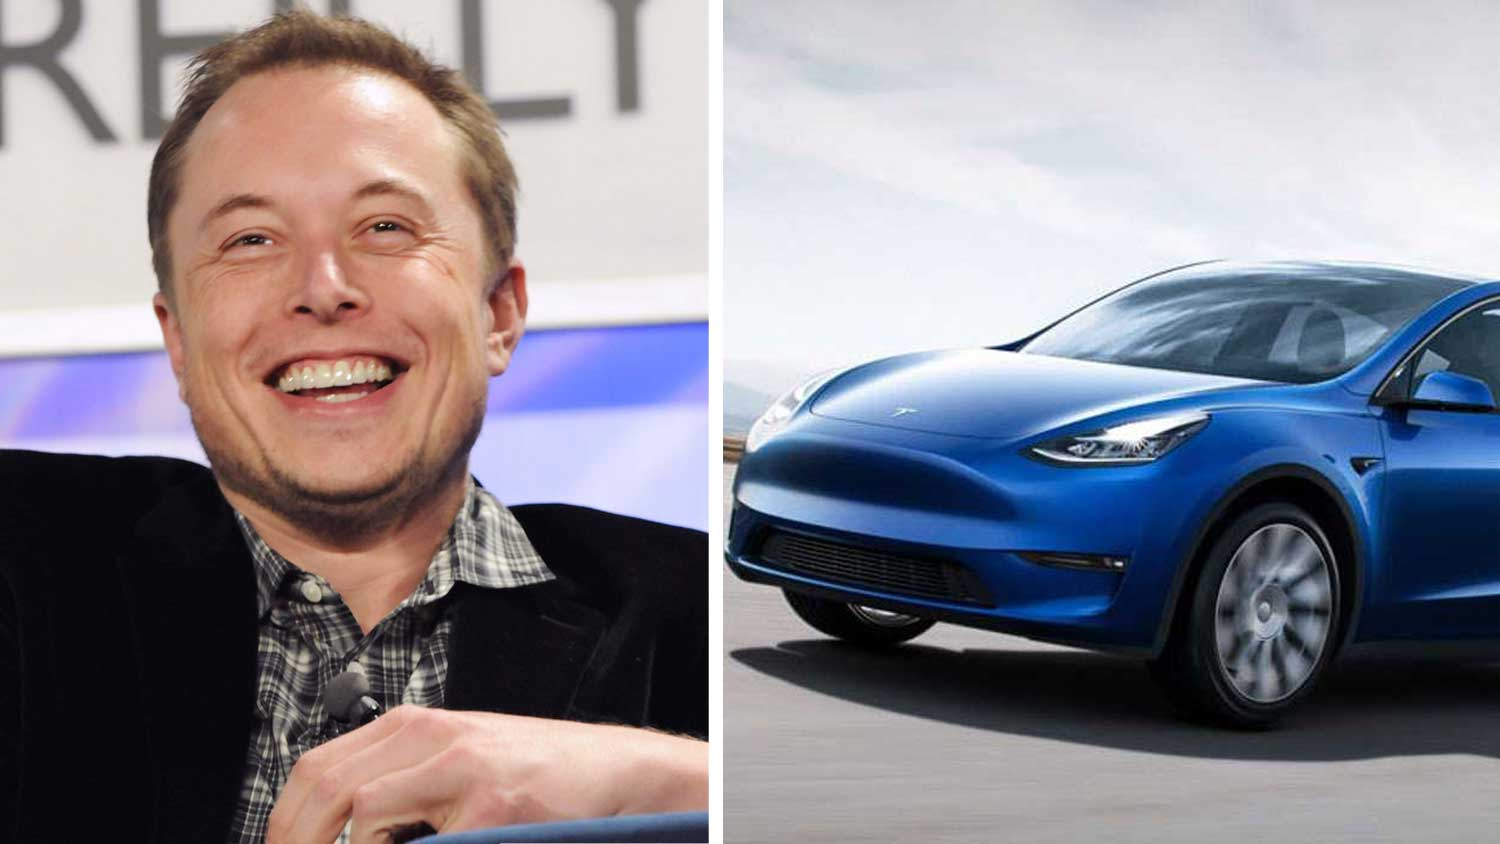 Musk Calls the New Leather-Free Tesla Model Y 'Sexy'